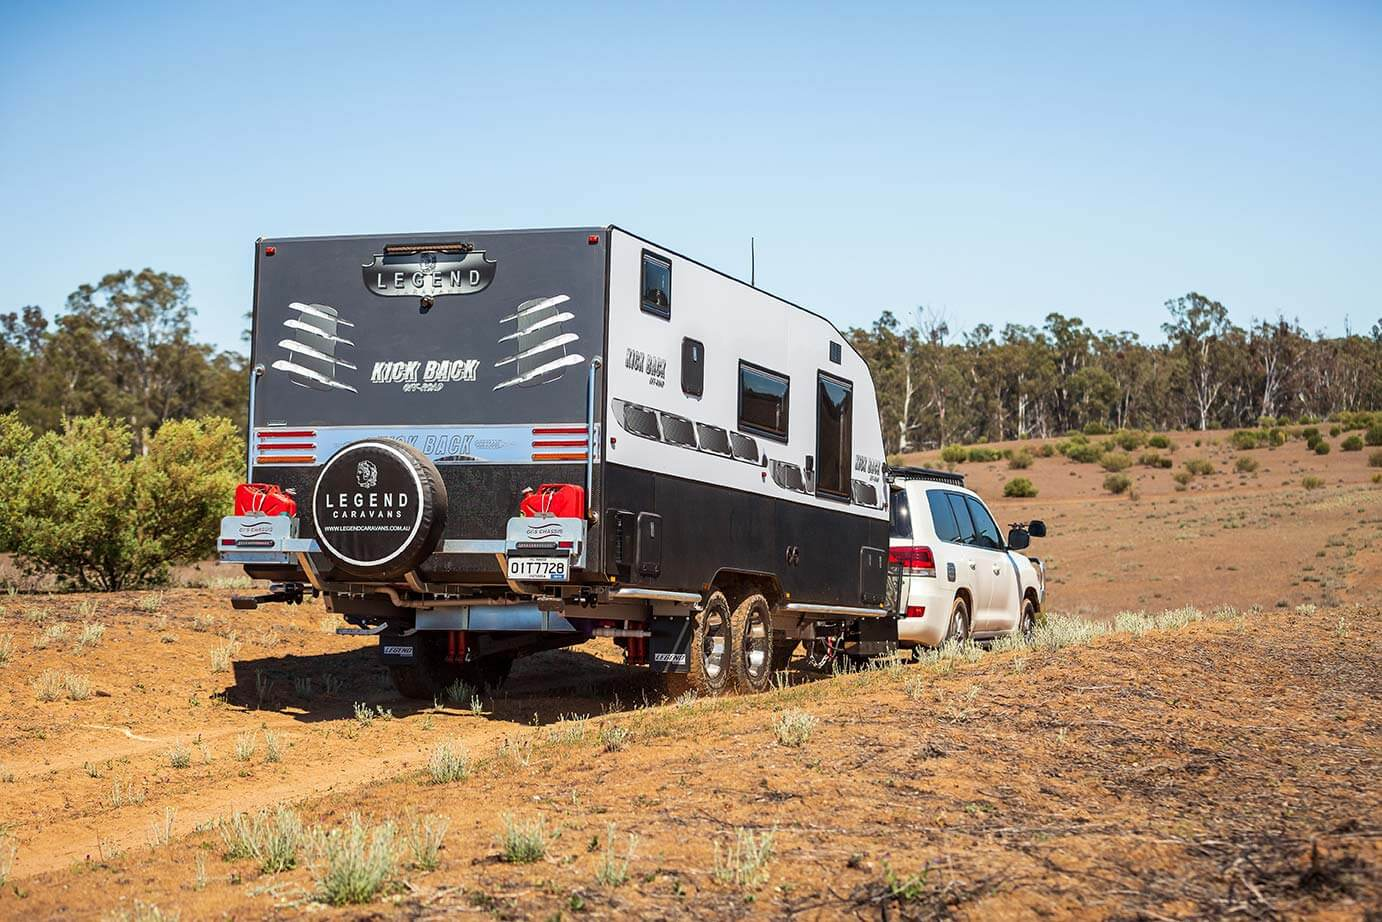 Legend Kickback Offroad by Explorer RV